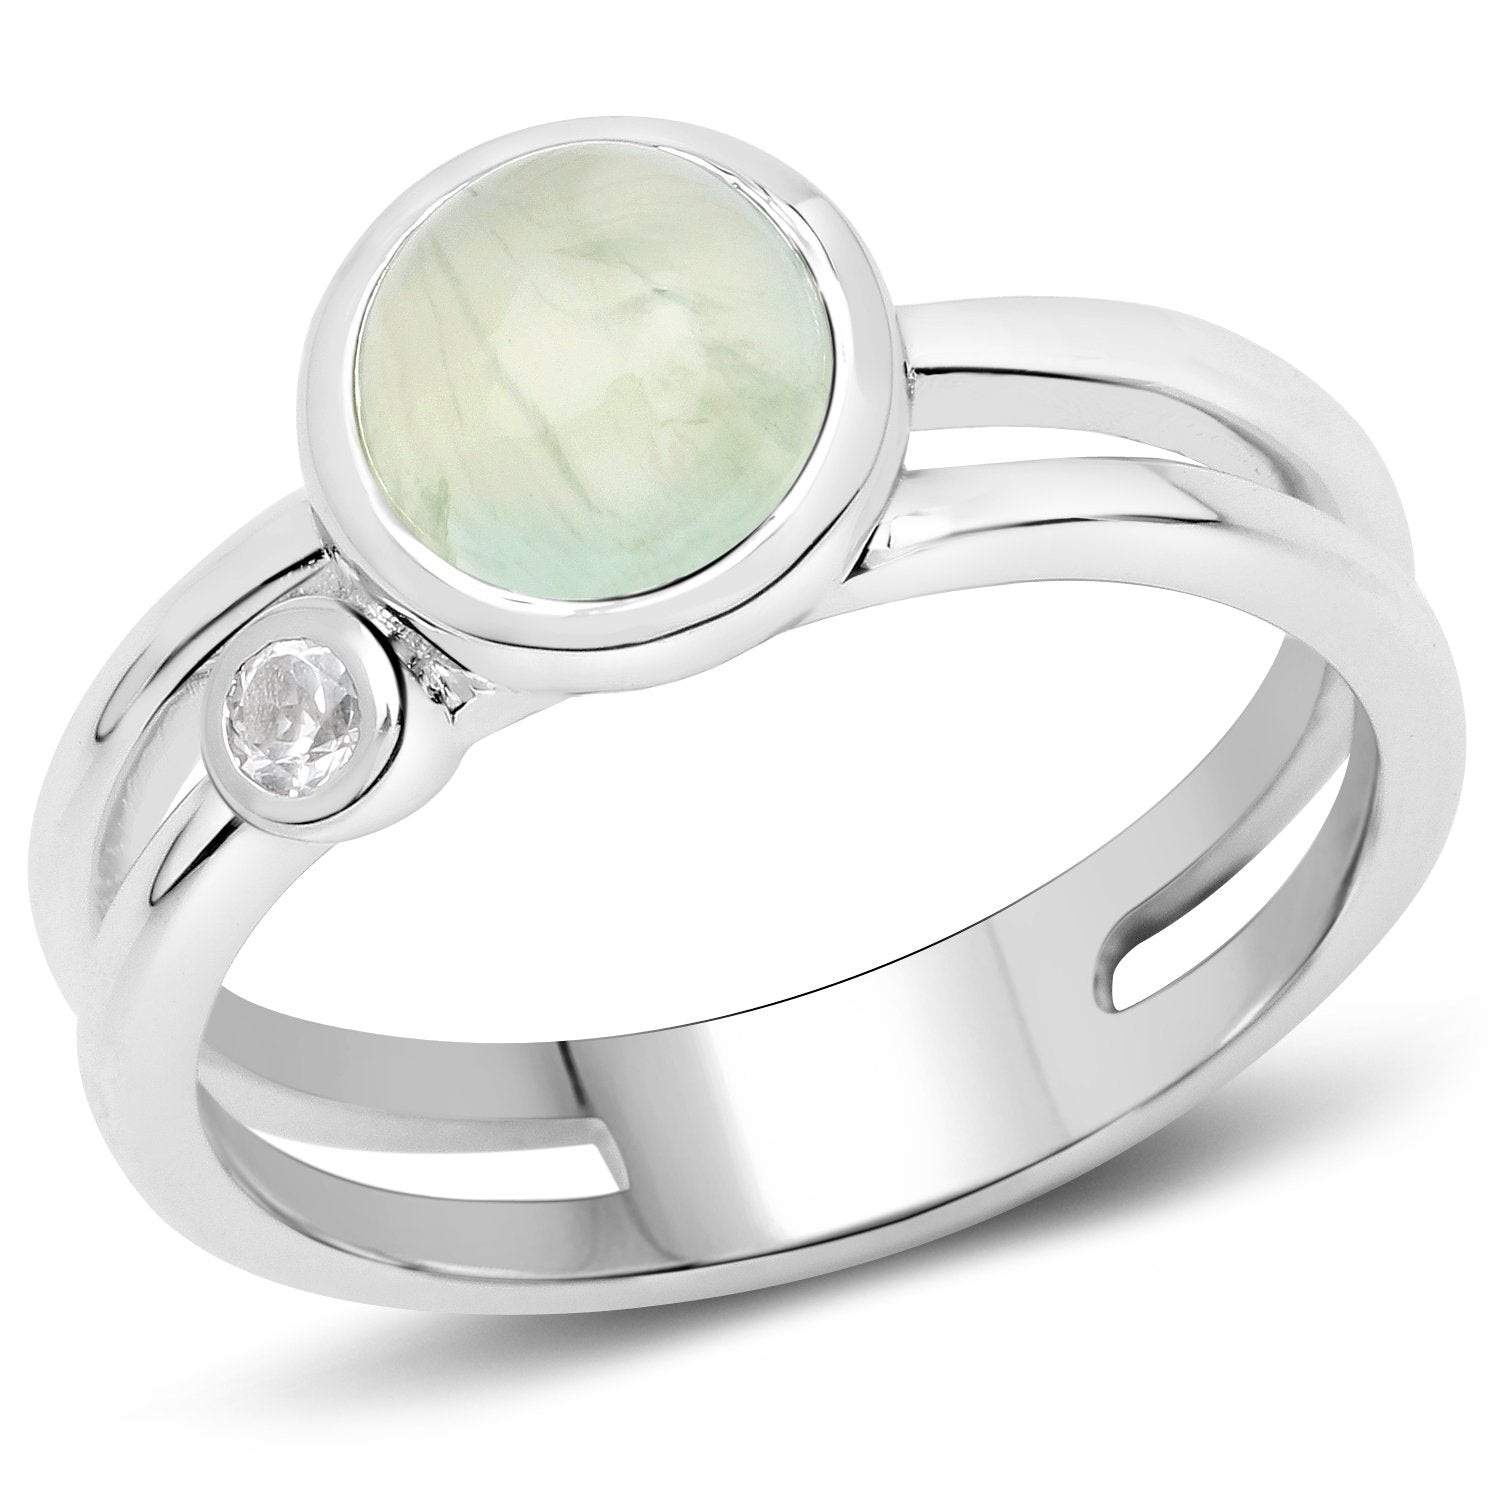 LoveHuang 1.81 Carats Genuine Prehnite and White Topaz Ring Solid .925 Sterling Silver With Rhodium Plating